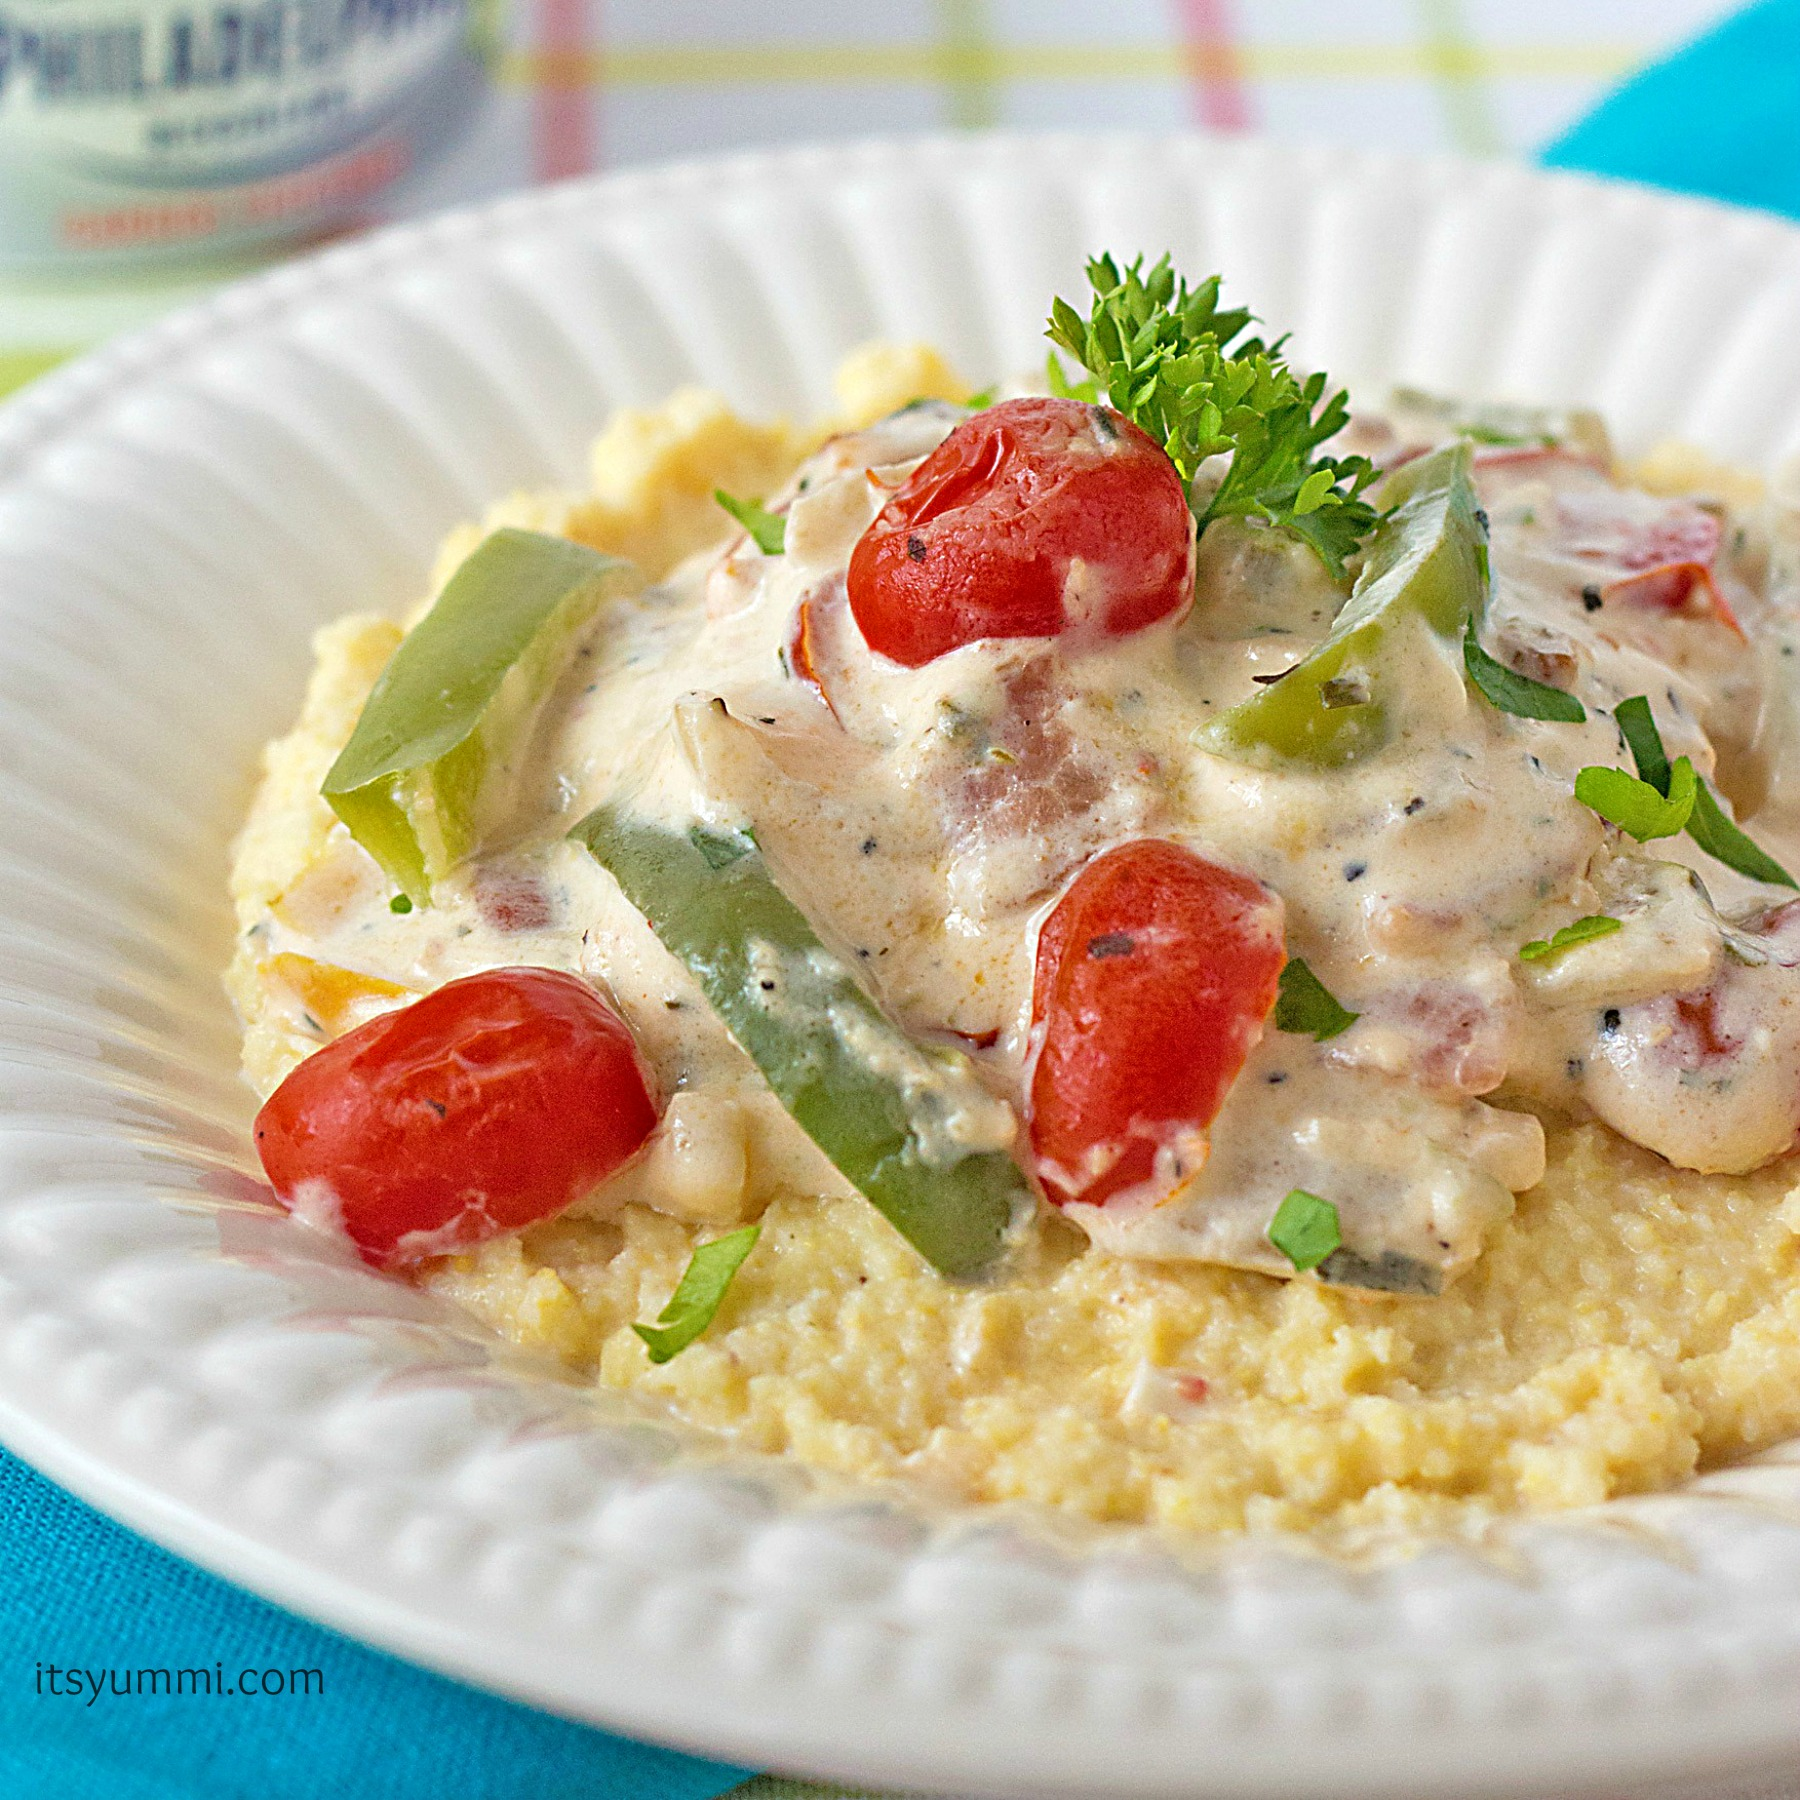 Roasted Tomato Skillet with Philly Veggie Cream Cheese Sauce from itsyummi.com #SpreadTheFlavor #shop